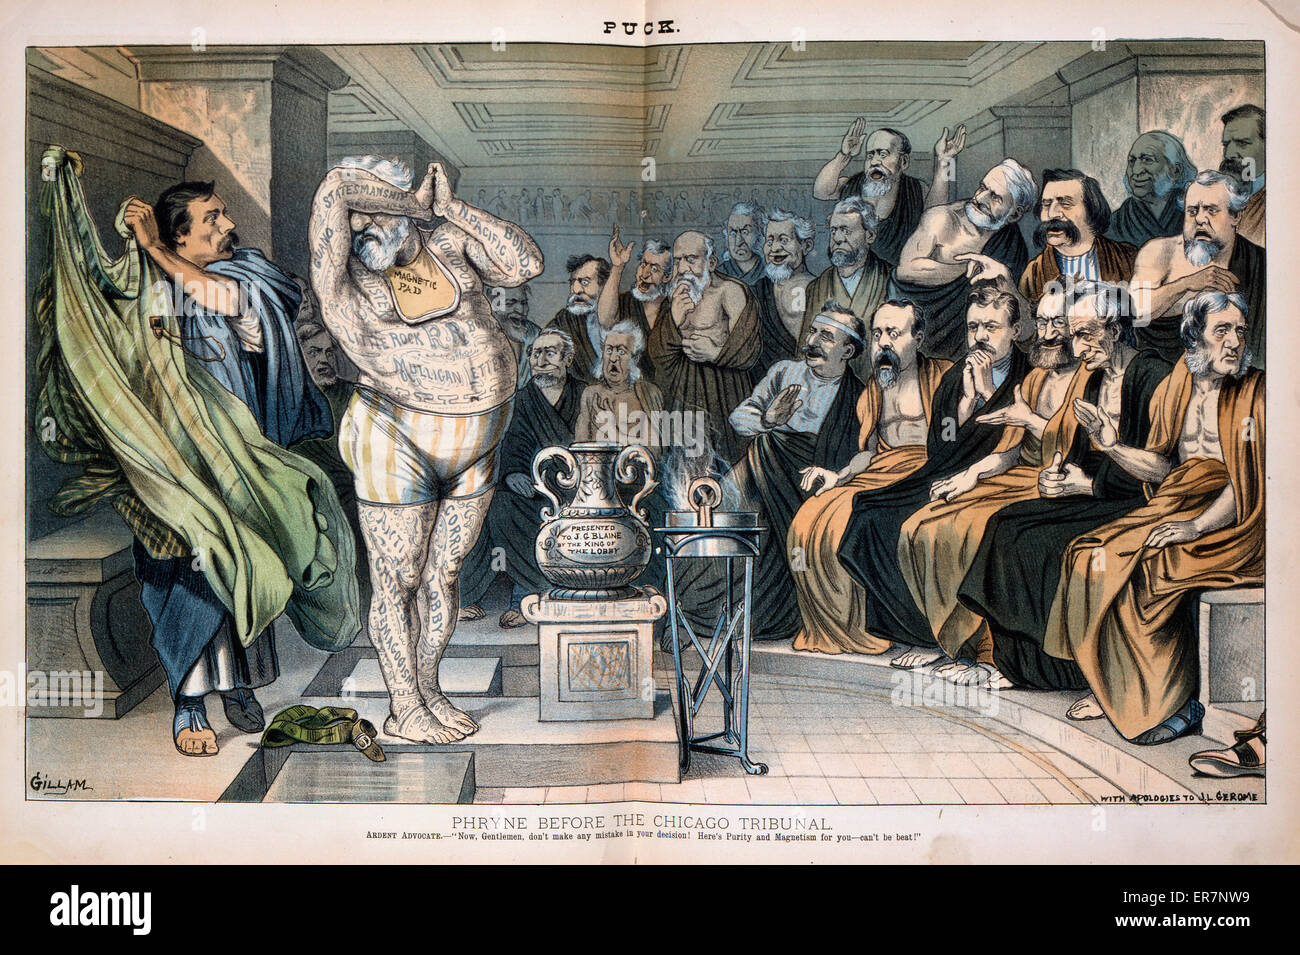 Phryne before the Chicago tribunal. Illustration showing Republican presidential candidate James G. Blaine, wearing - Stock Image